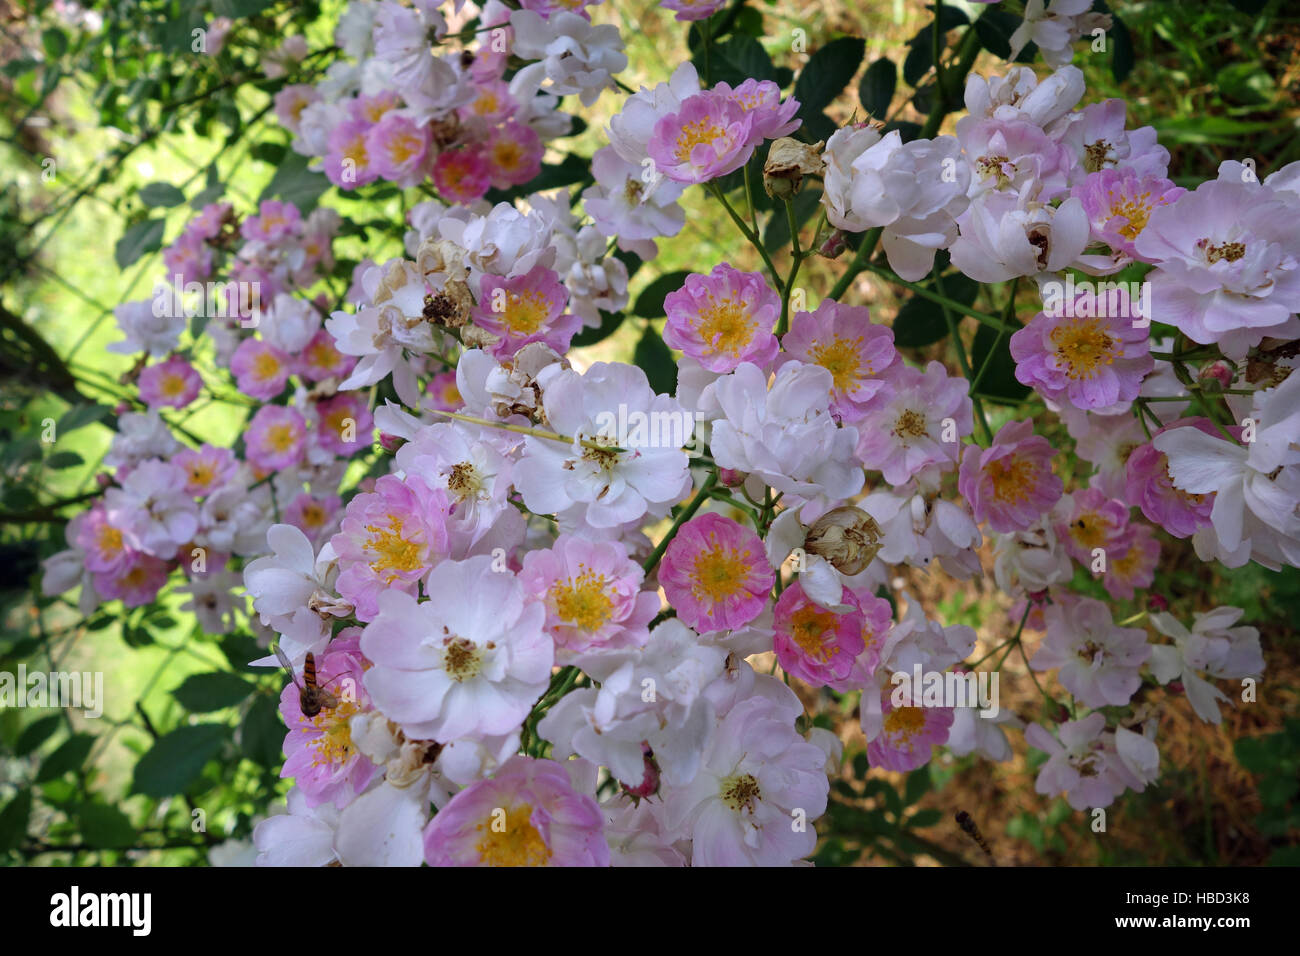 shrub rose with little pink blossoms - Stock Image